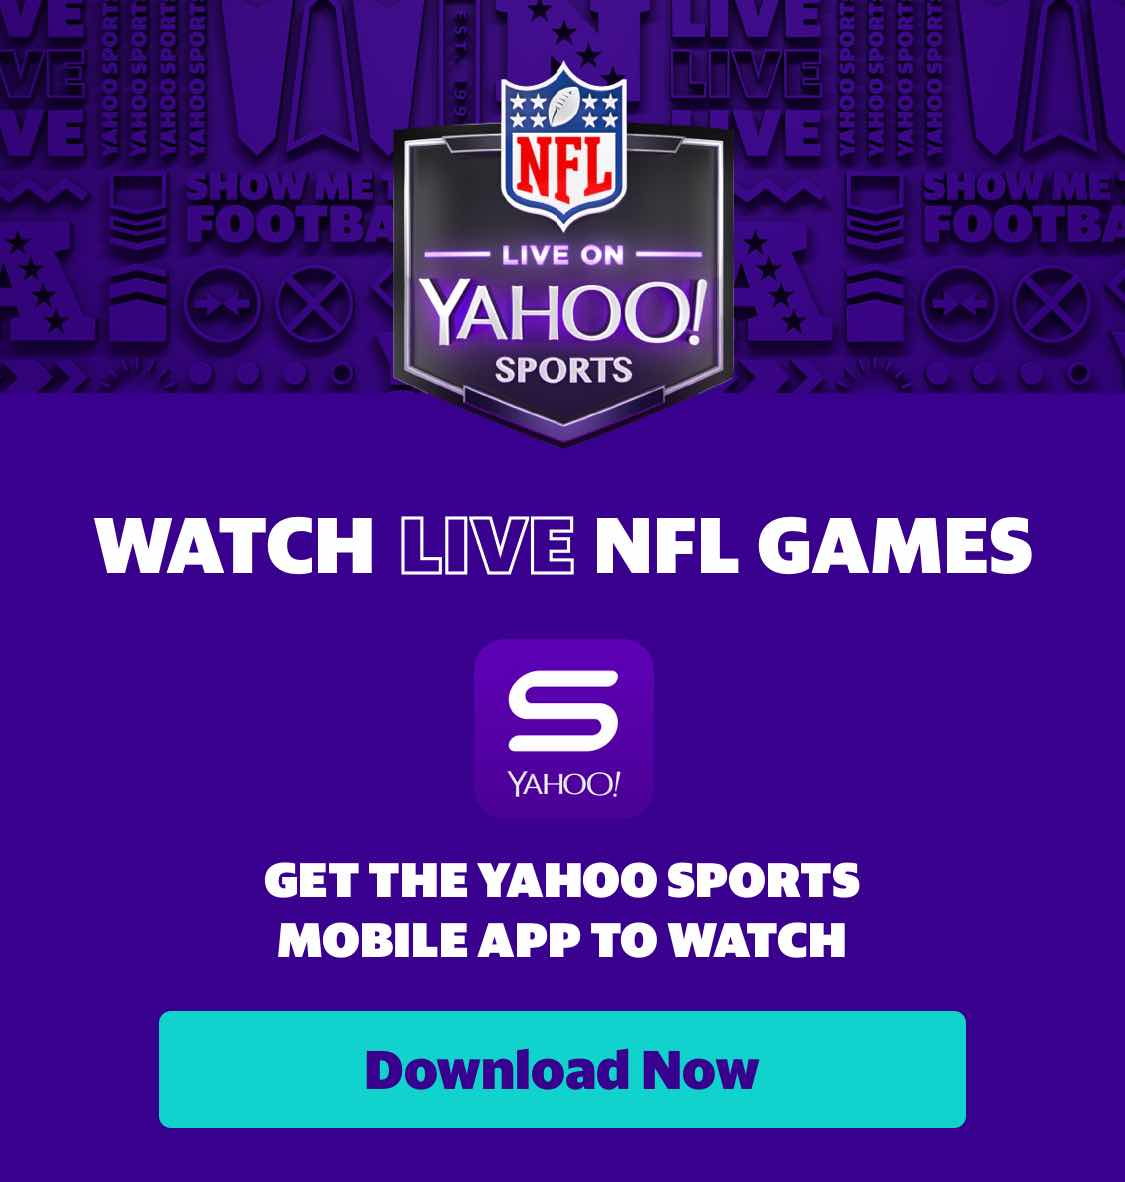 Watch Live NFL Games.  Get the Yahoo Sports Mobile App to watch.  Download Now.